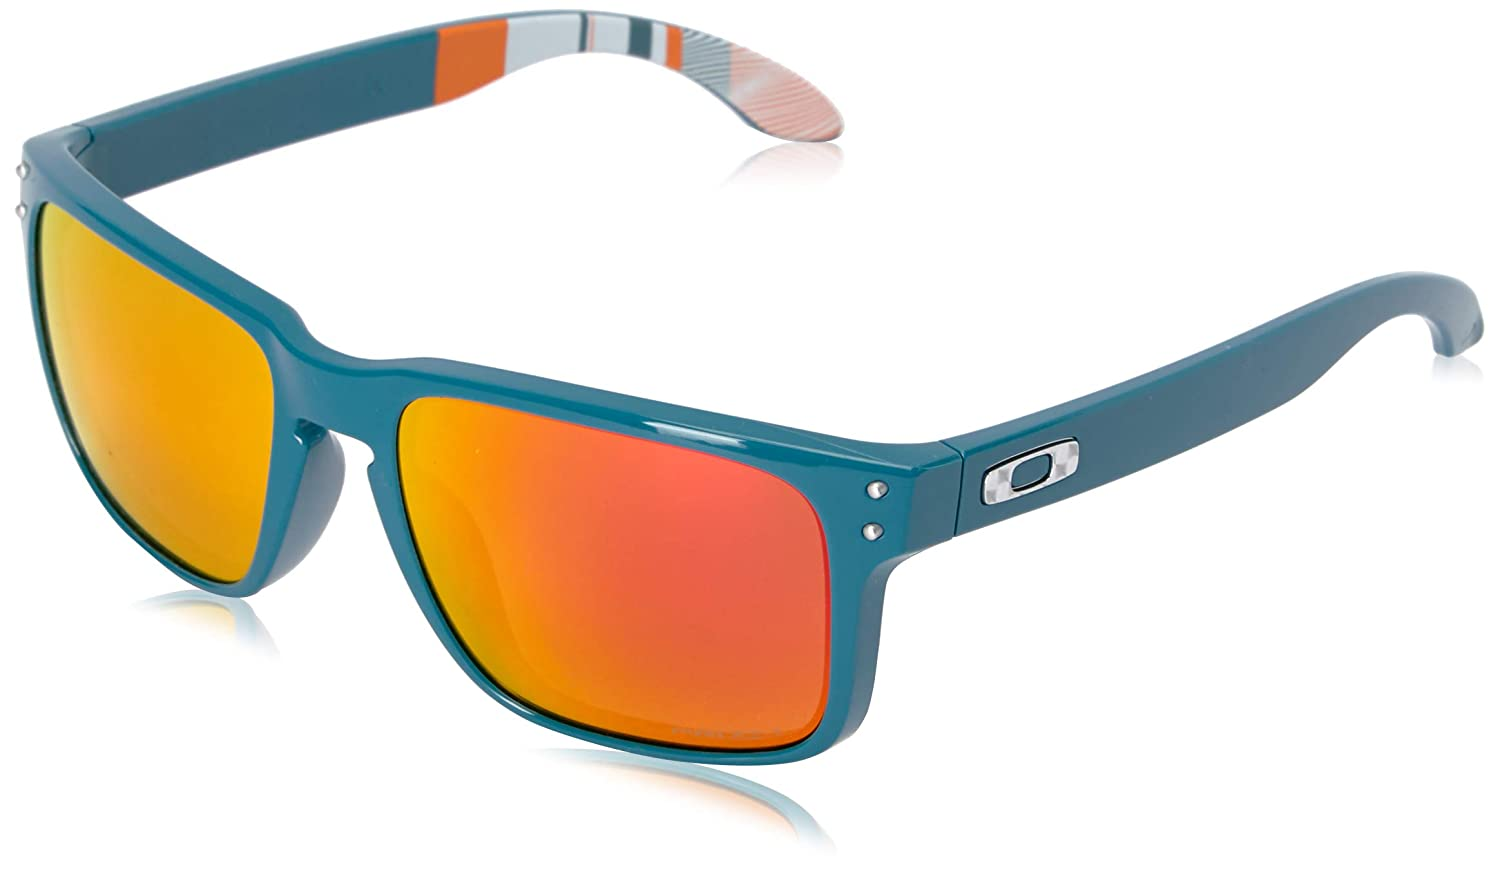 a5c56ffa8de Amazon.com  Oakley Men s Holbrook Aero Sunglasses